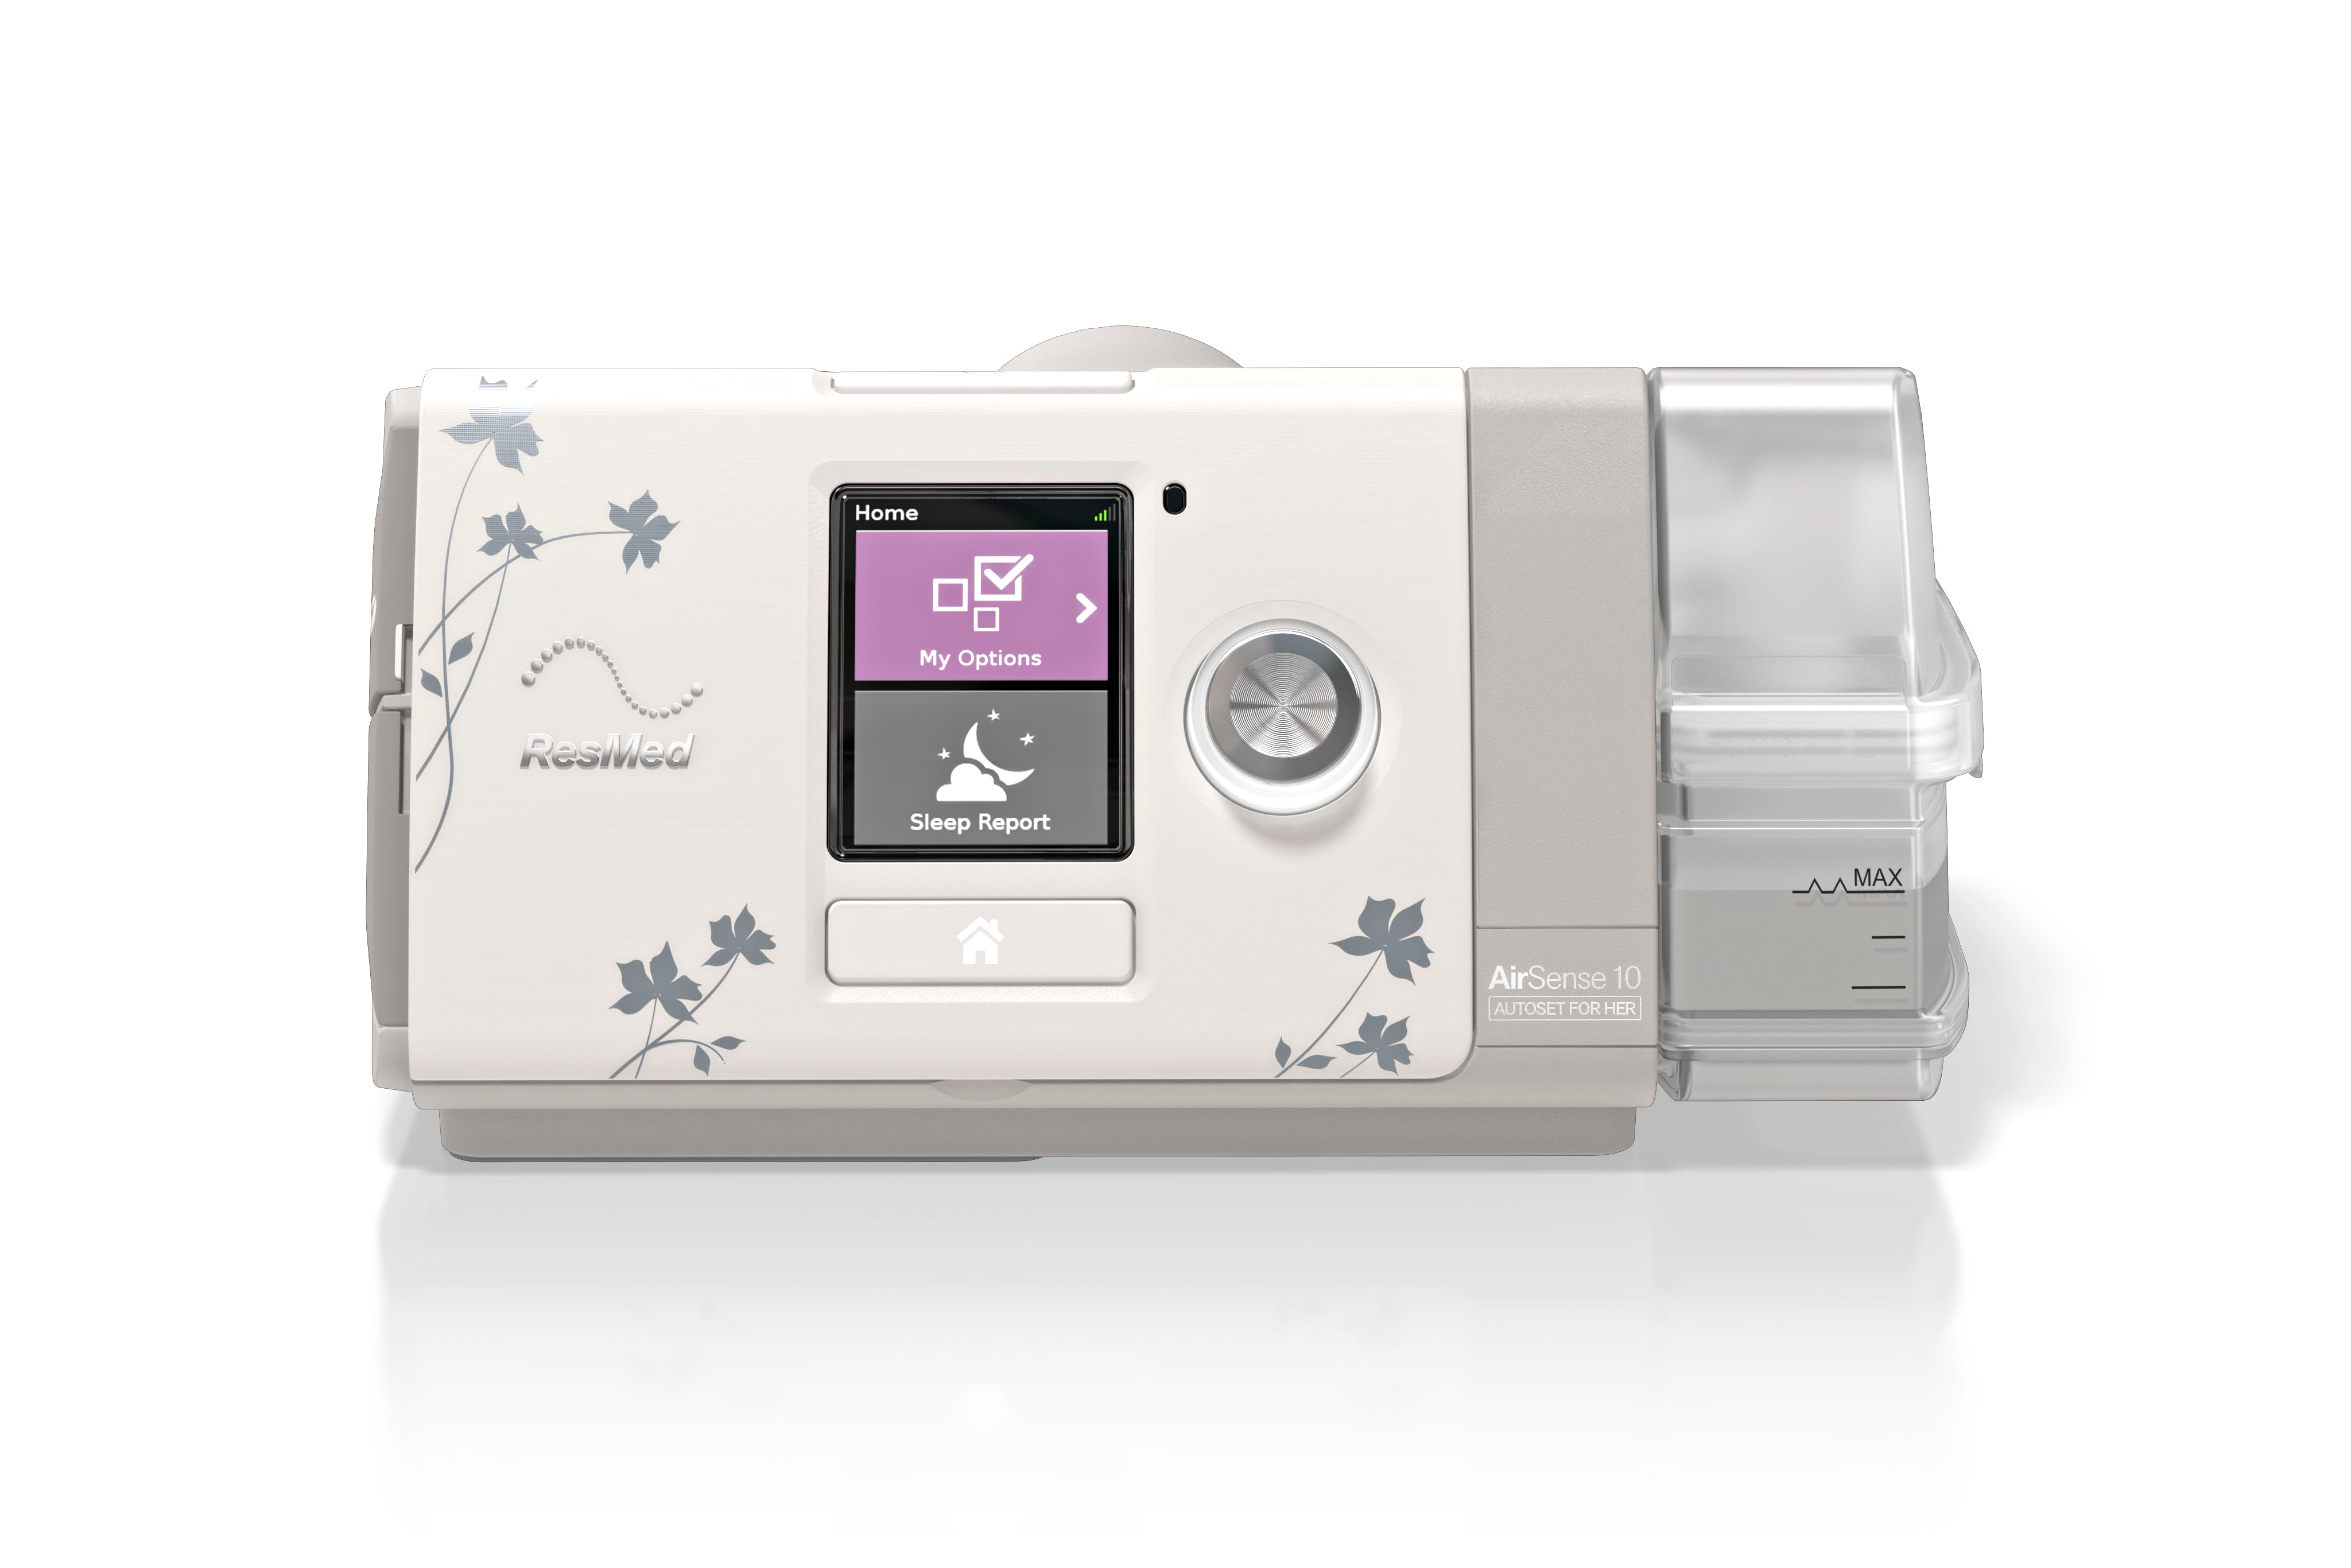 CPAP and CPAP alternatives